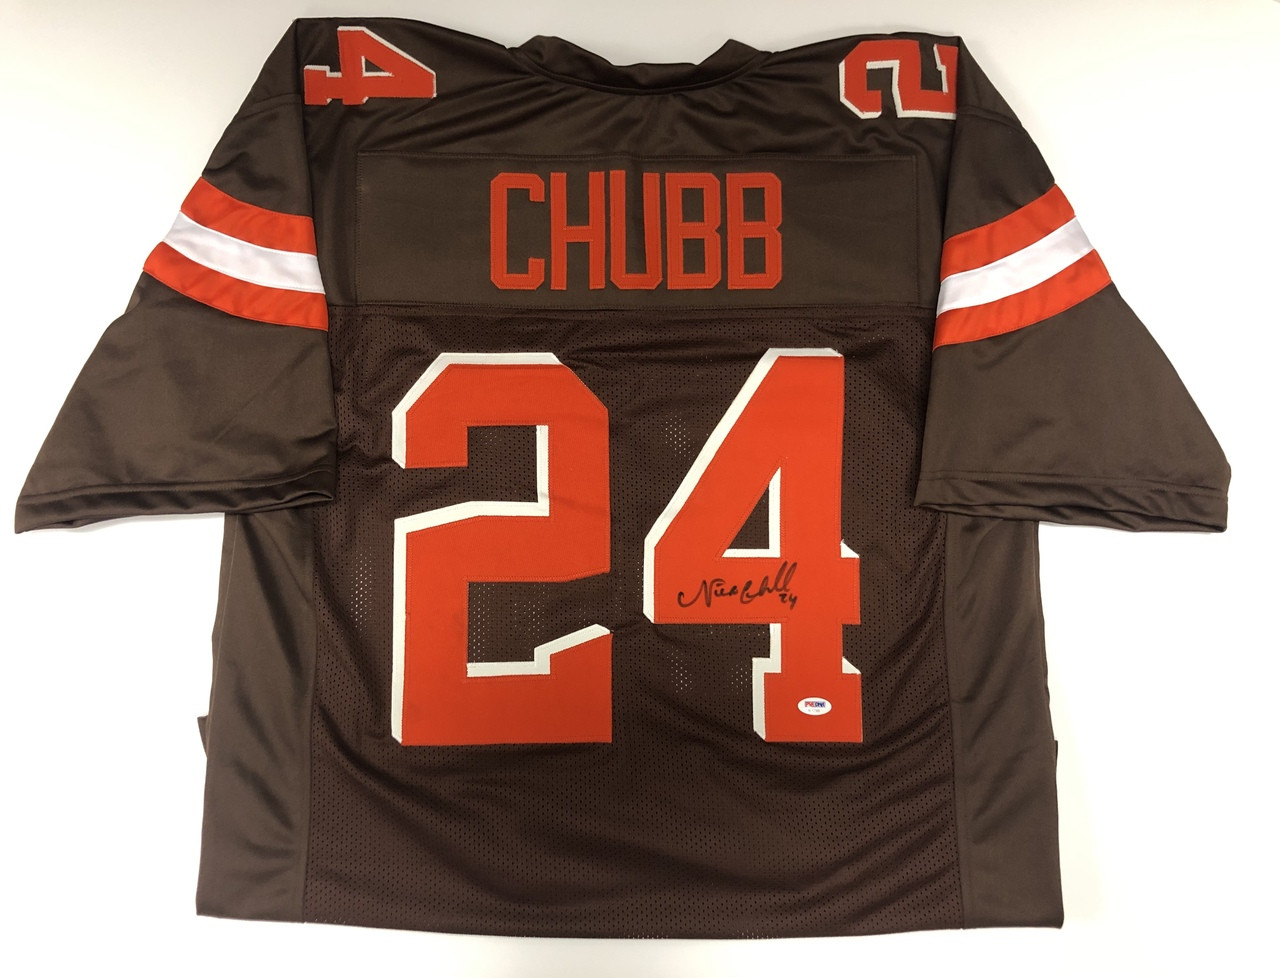 huge selection of da779 e9f50 Nick Chubb Cleveland Browns Autographed Jersey - PSA Authentic